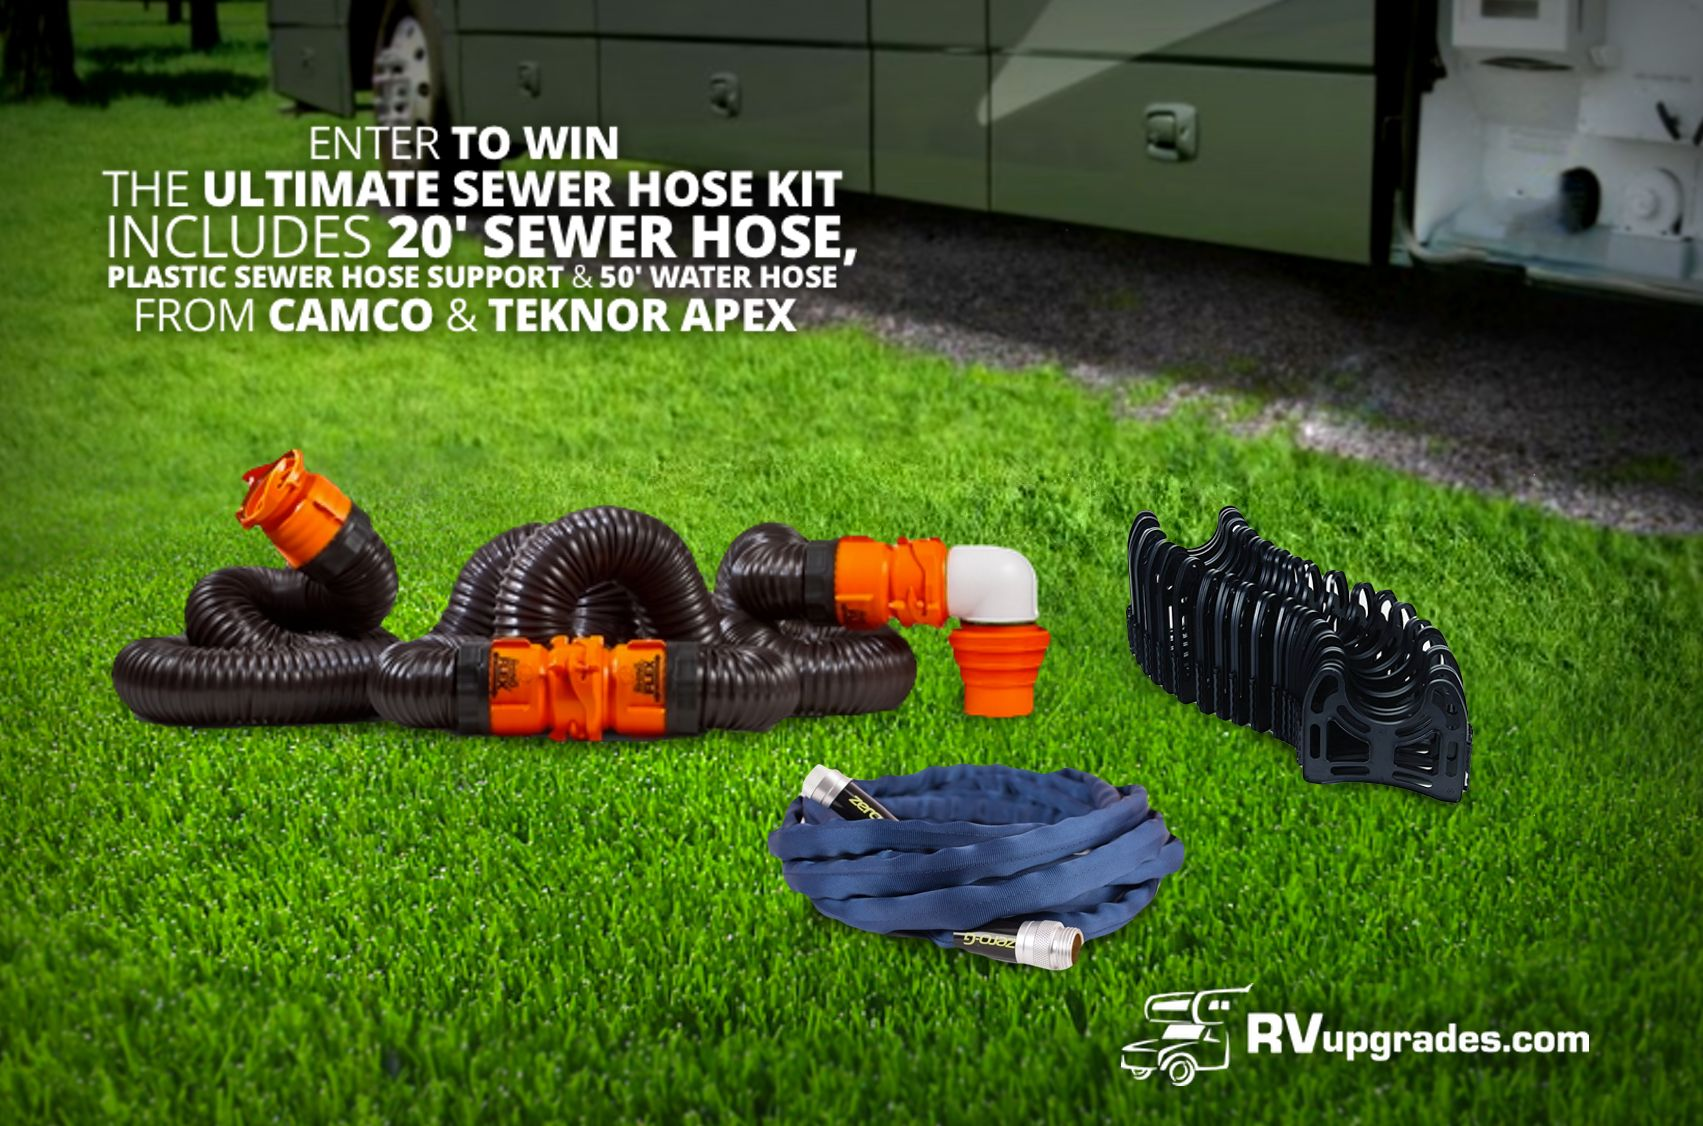 This week 1 lucky winner will win the Ultimate RV Sewer